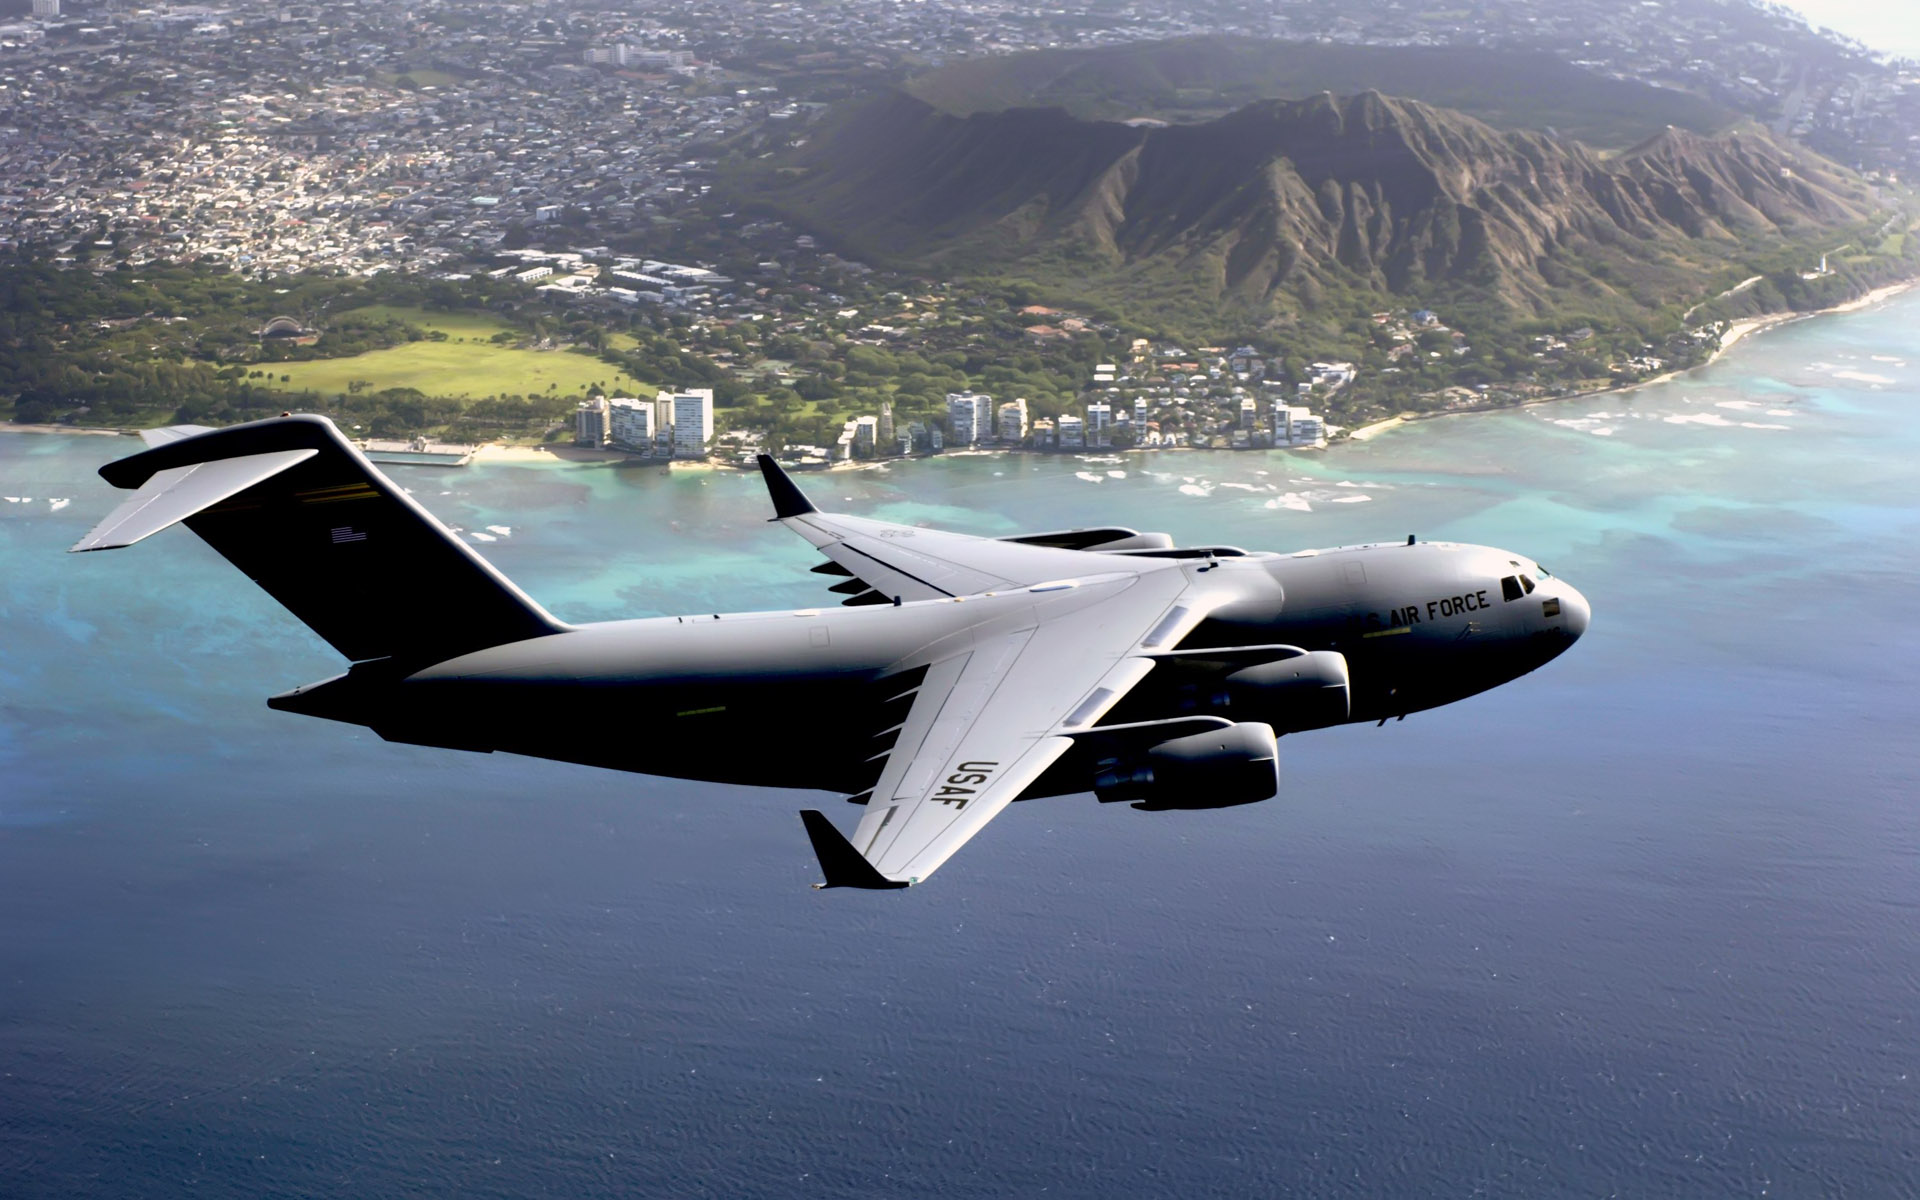 hawaii based c 17 globemaster iii wide